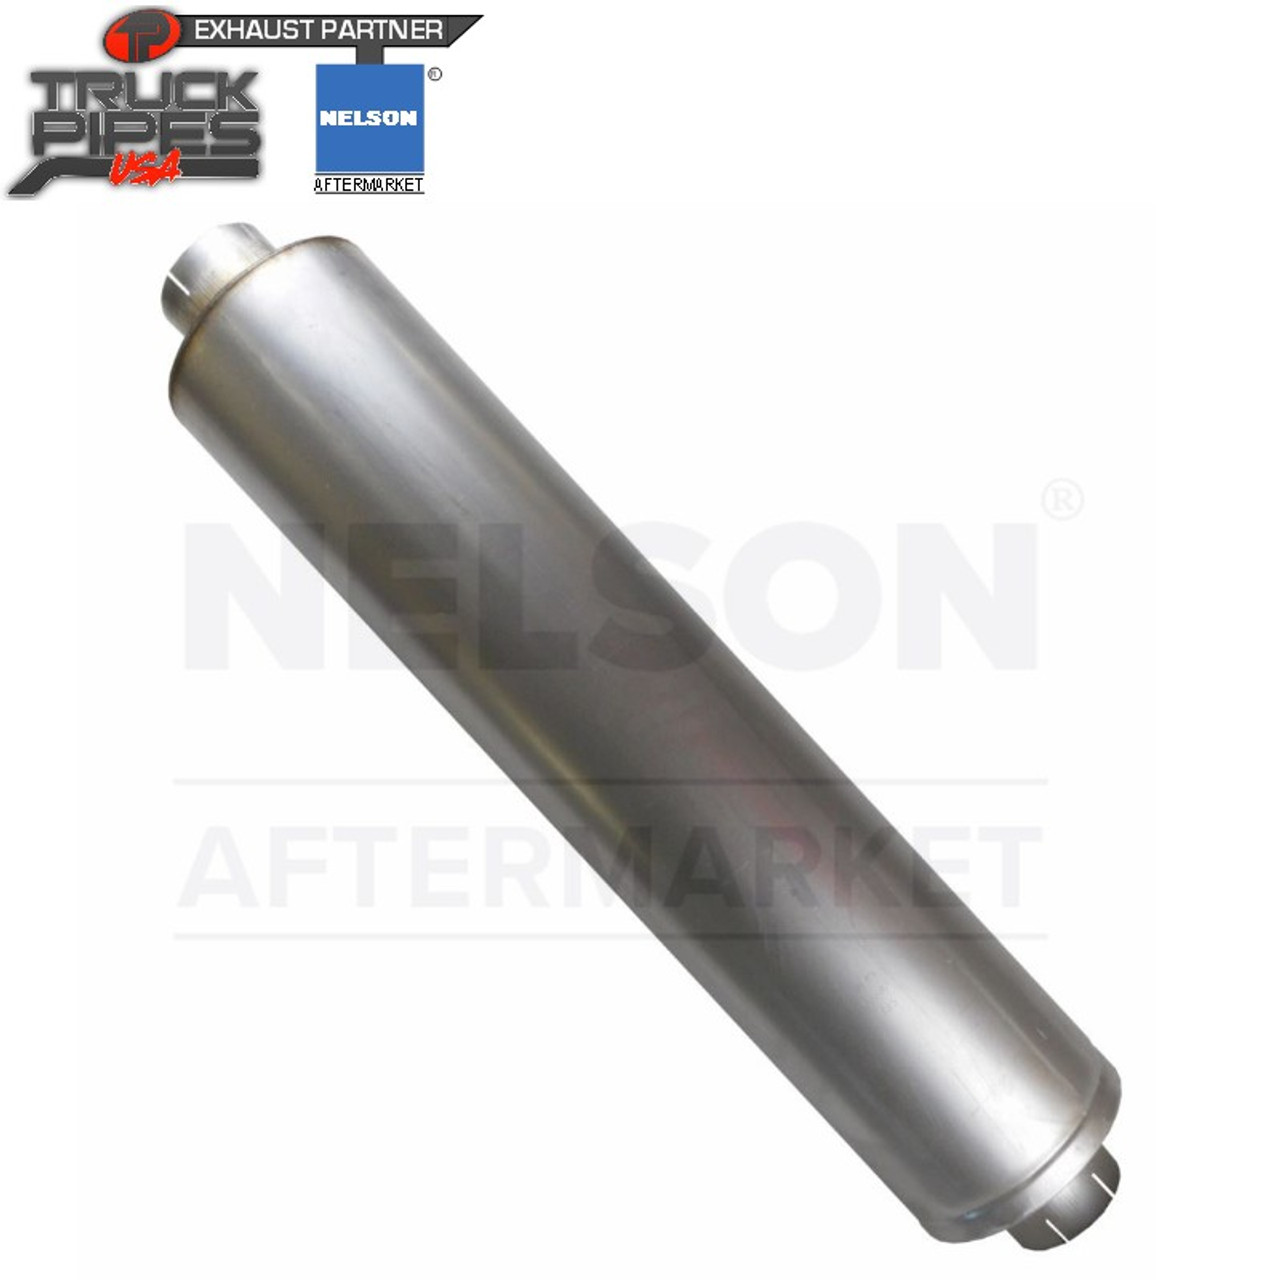 "VTM Muffler - Style 1 EIEO - 10x44 - 5""ID in/out (OEM) Nelson 86130M"